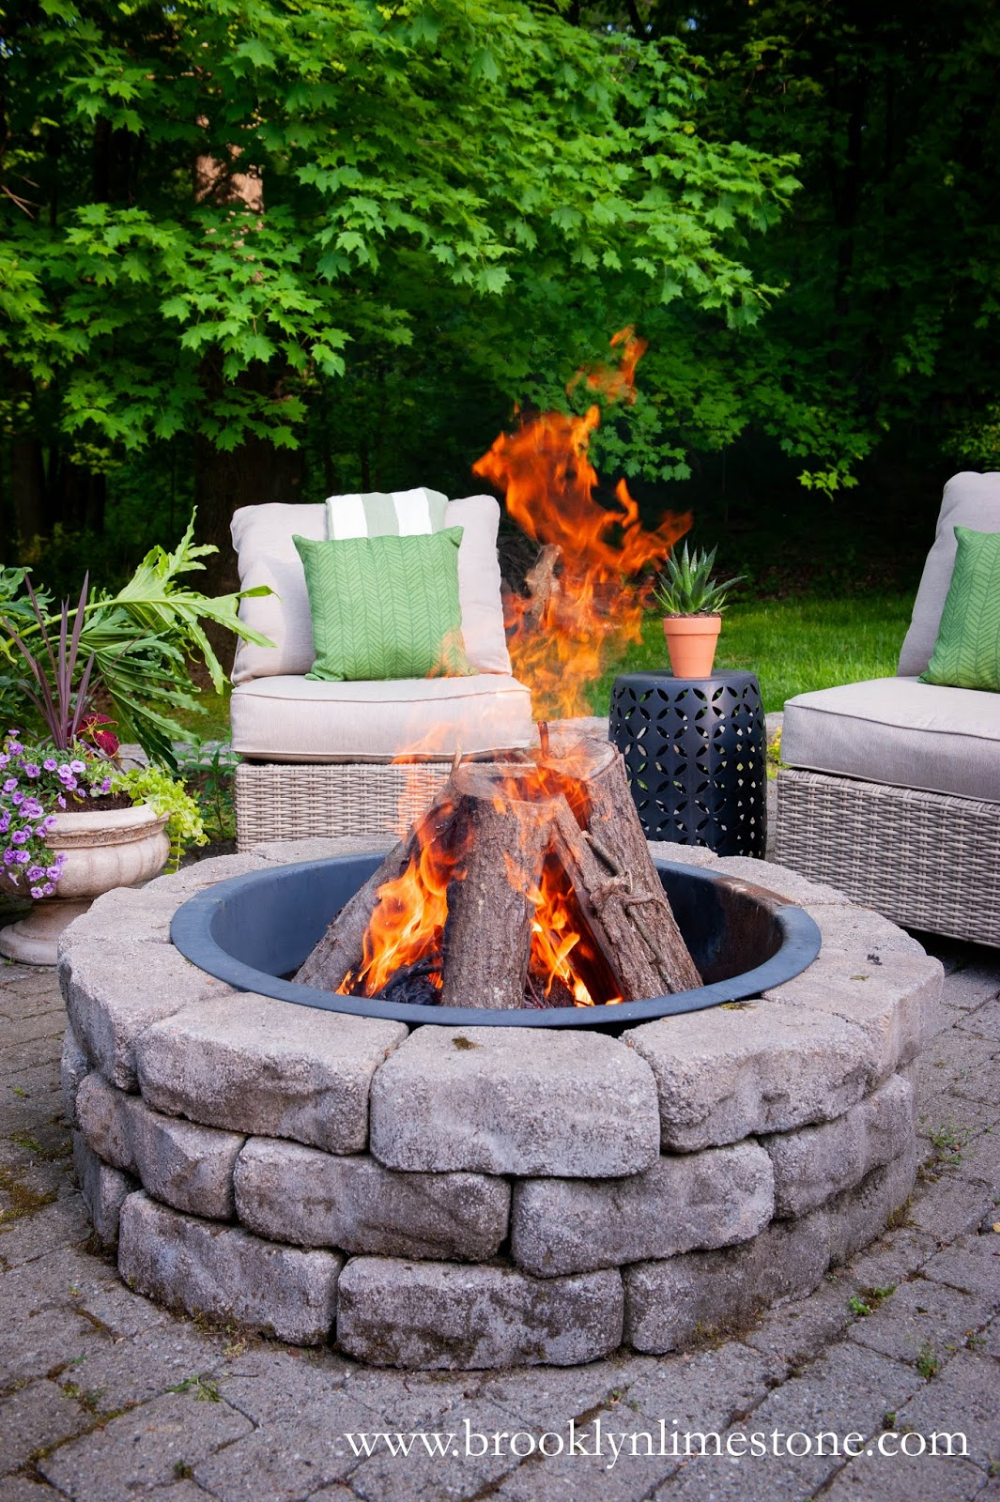 Brooklyn Limestone in 2020 | Fire pit patio, Fire pit ... on Living Room Fire Pit id=35168